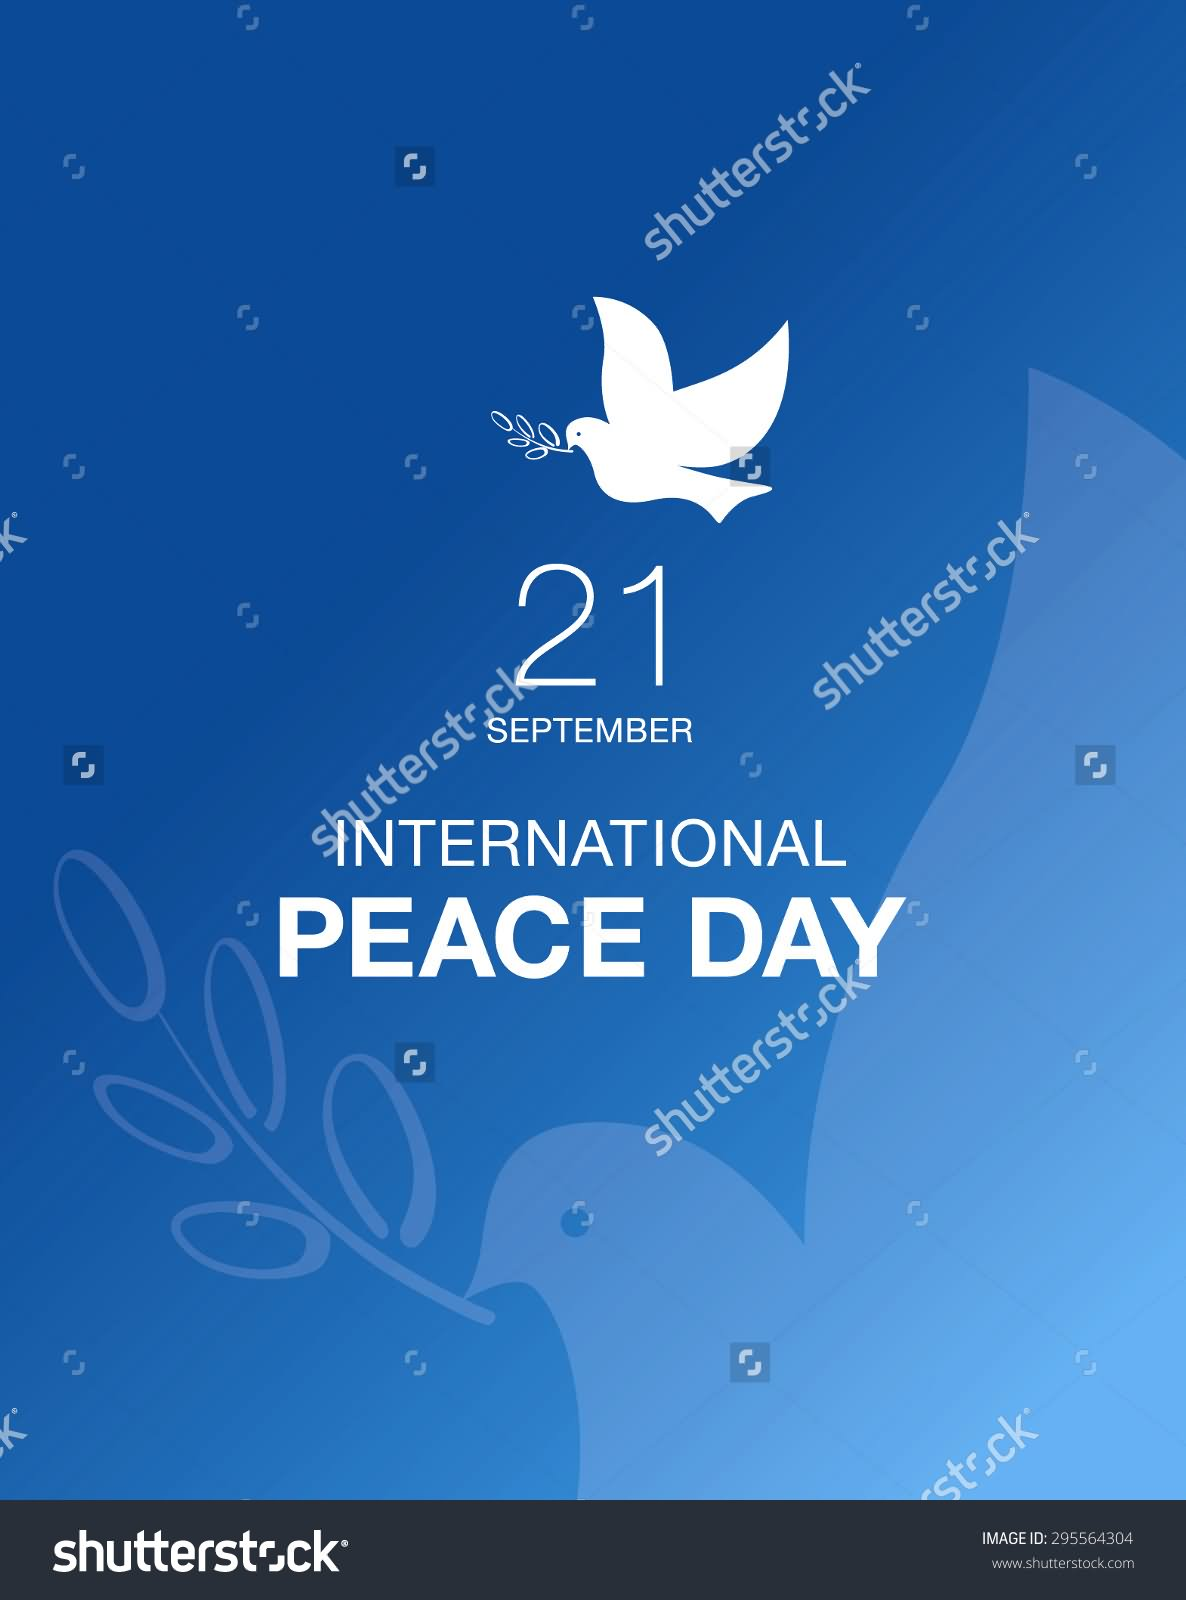 98-International Peace Day Wishes